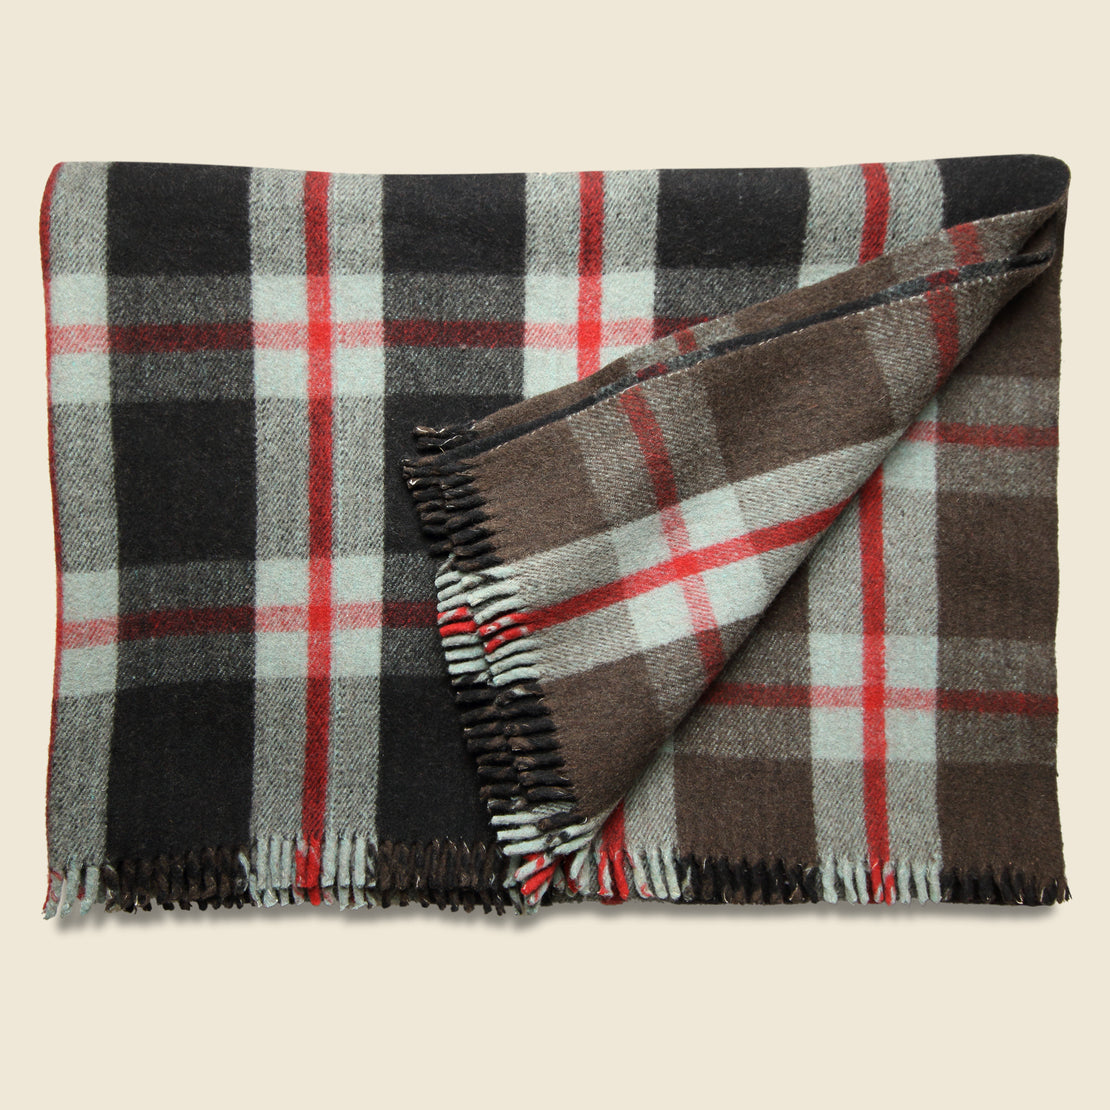 Vintage Vintage Indian Wool Plaid Blanket - Black/Red